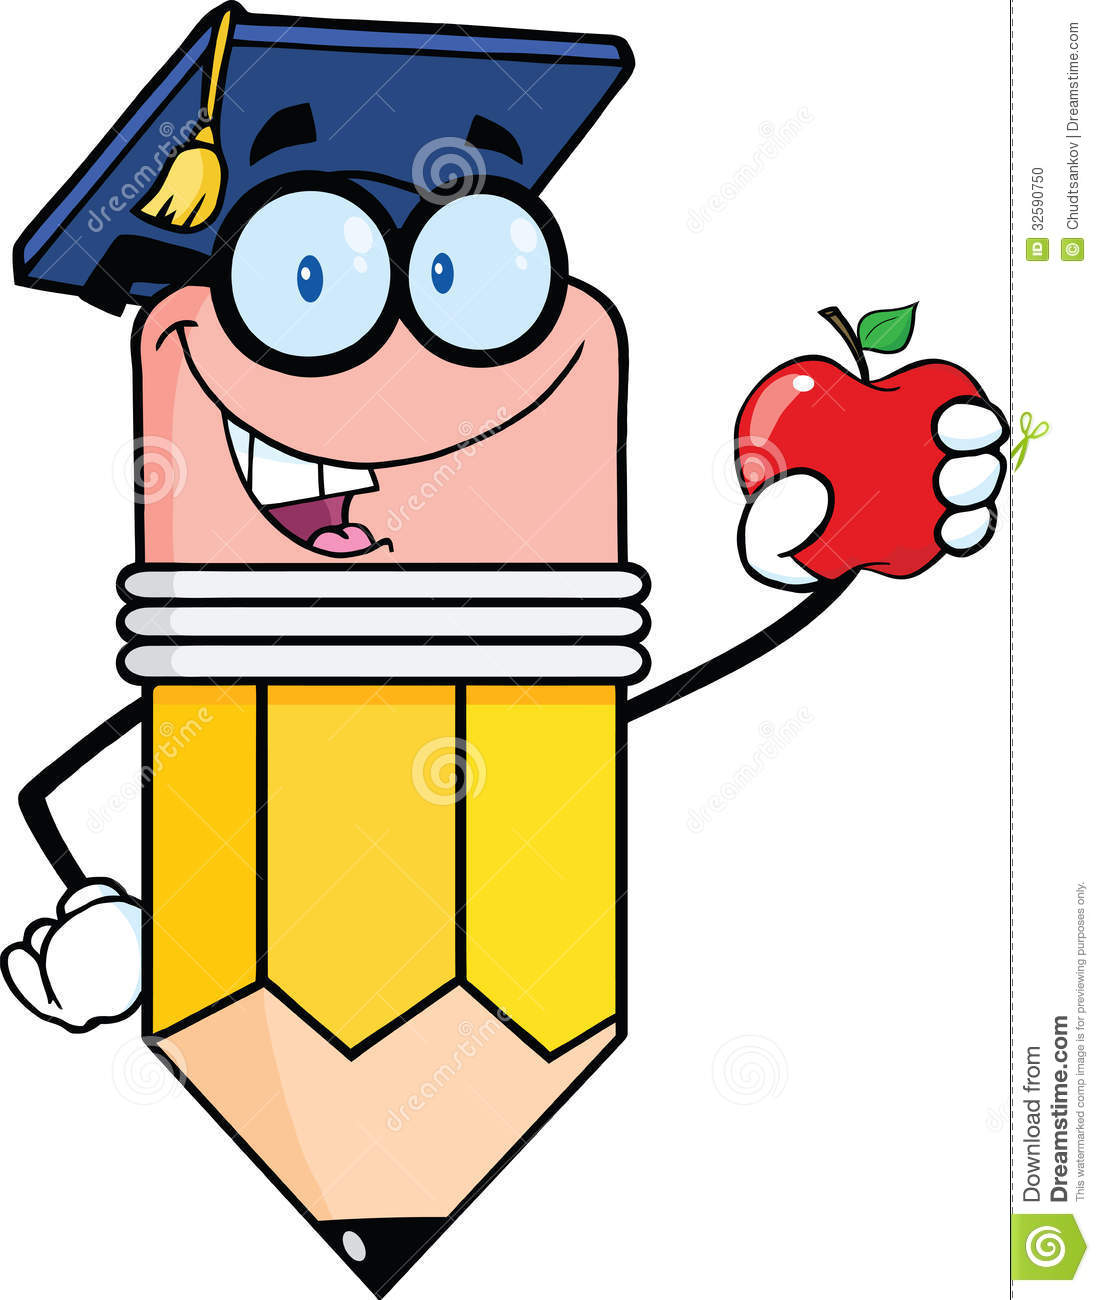 Pencil Teacher With Graduate Hat Holding A Red Apple Stock ...